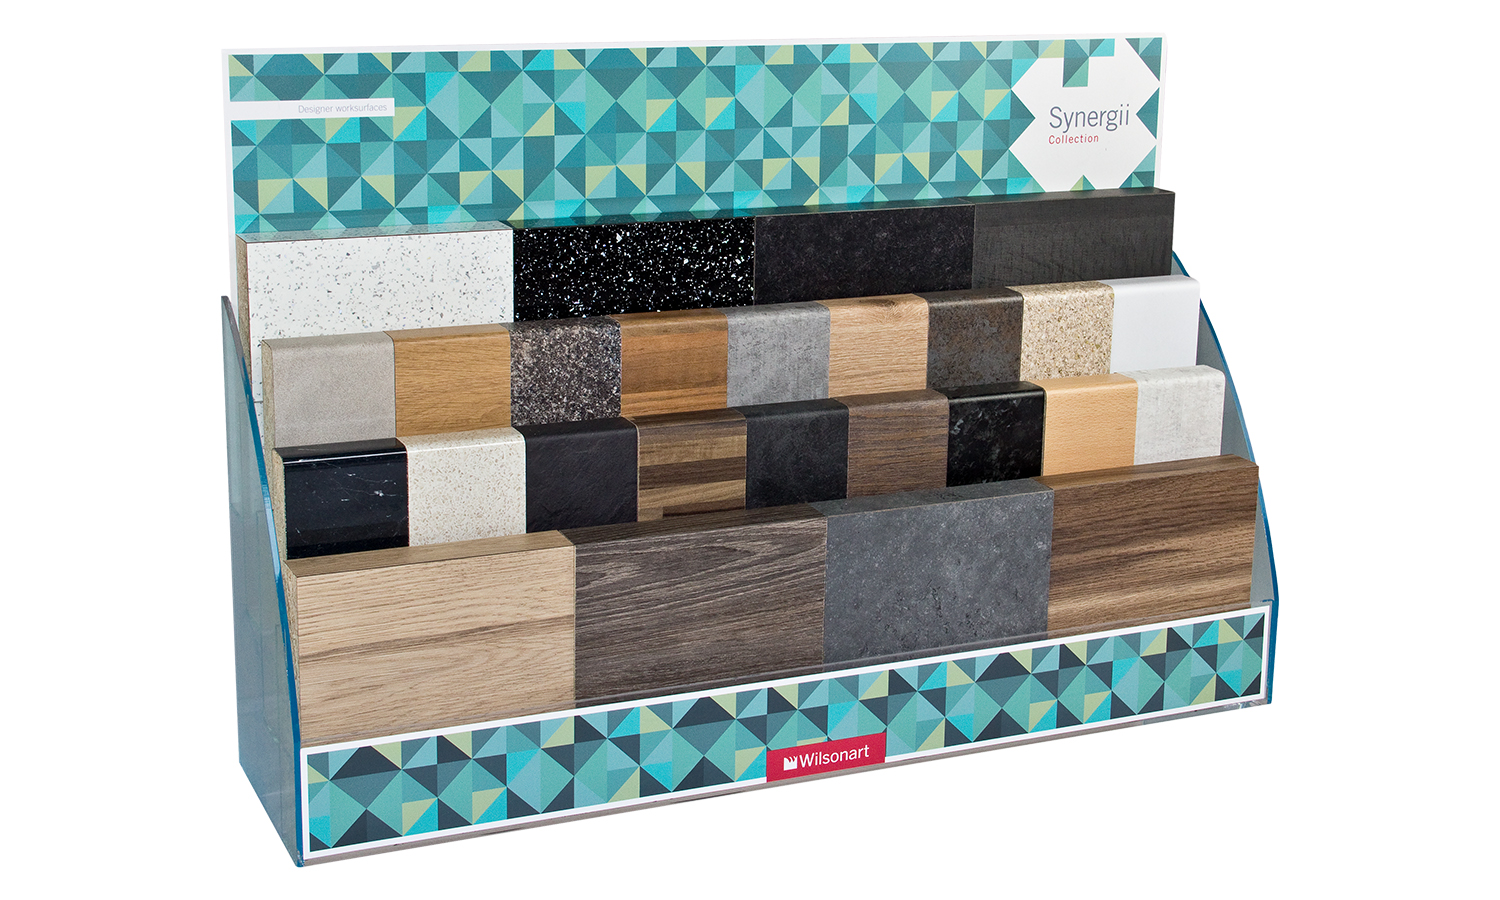 Synergii Laminate Kitchen Worktop Display Stand (26 Blocks & 4 Tier Stand)